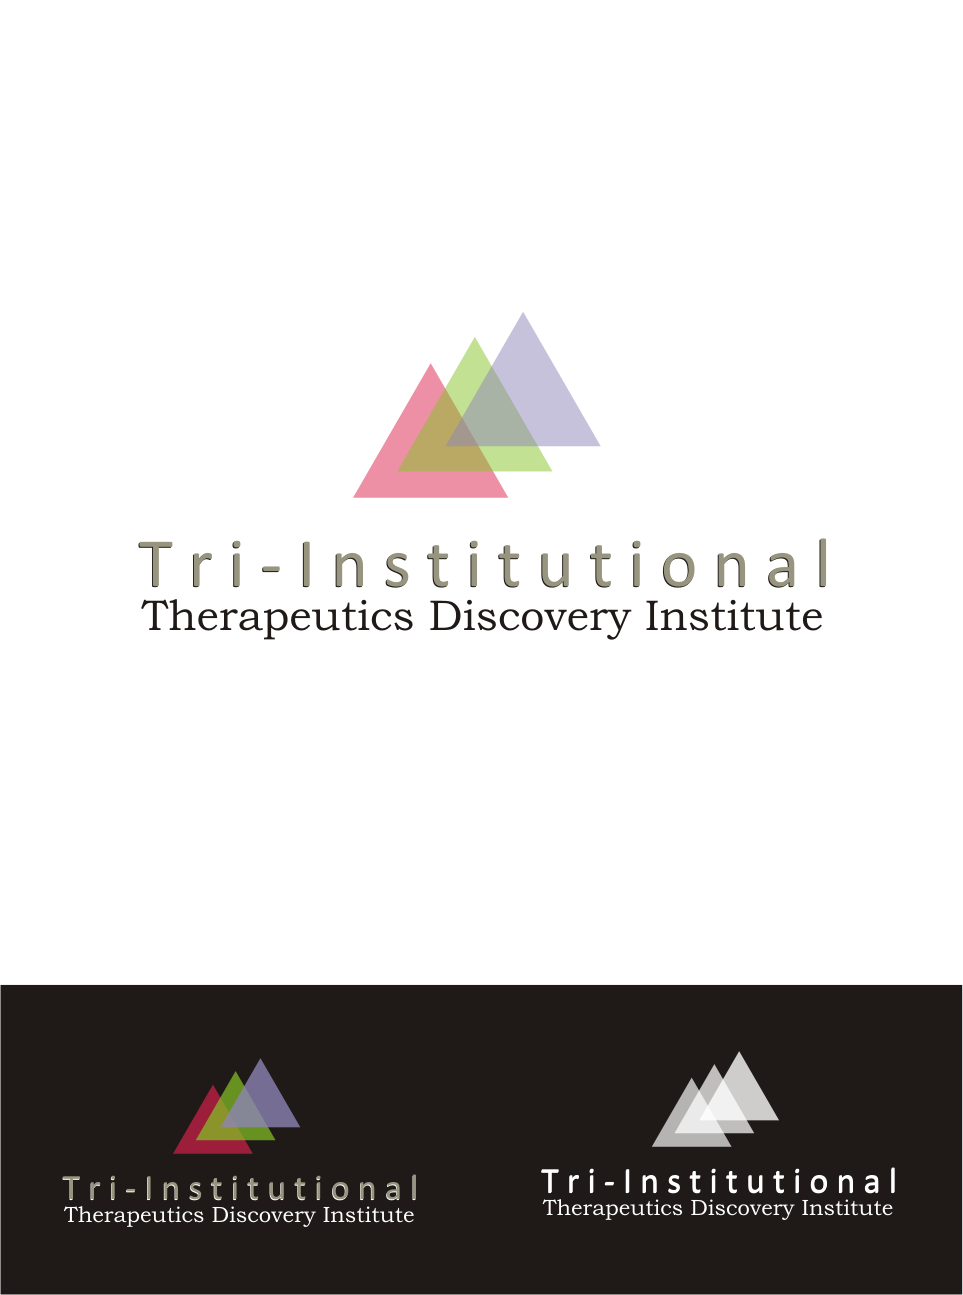 Logo Design by Nthus Nthis - Entry No. 118 in the Logo Design Contest Inspiring Logo Design for Tri-Institutional Therapeutics Discovery Institute.